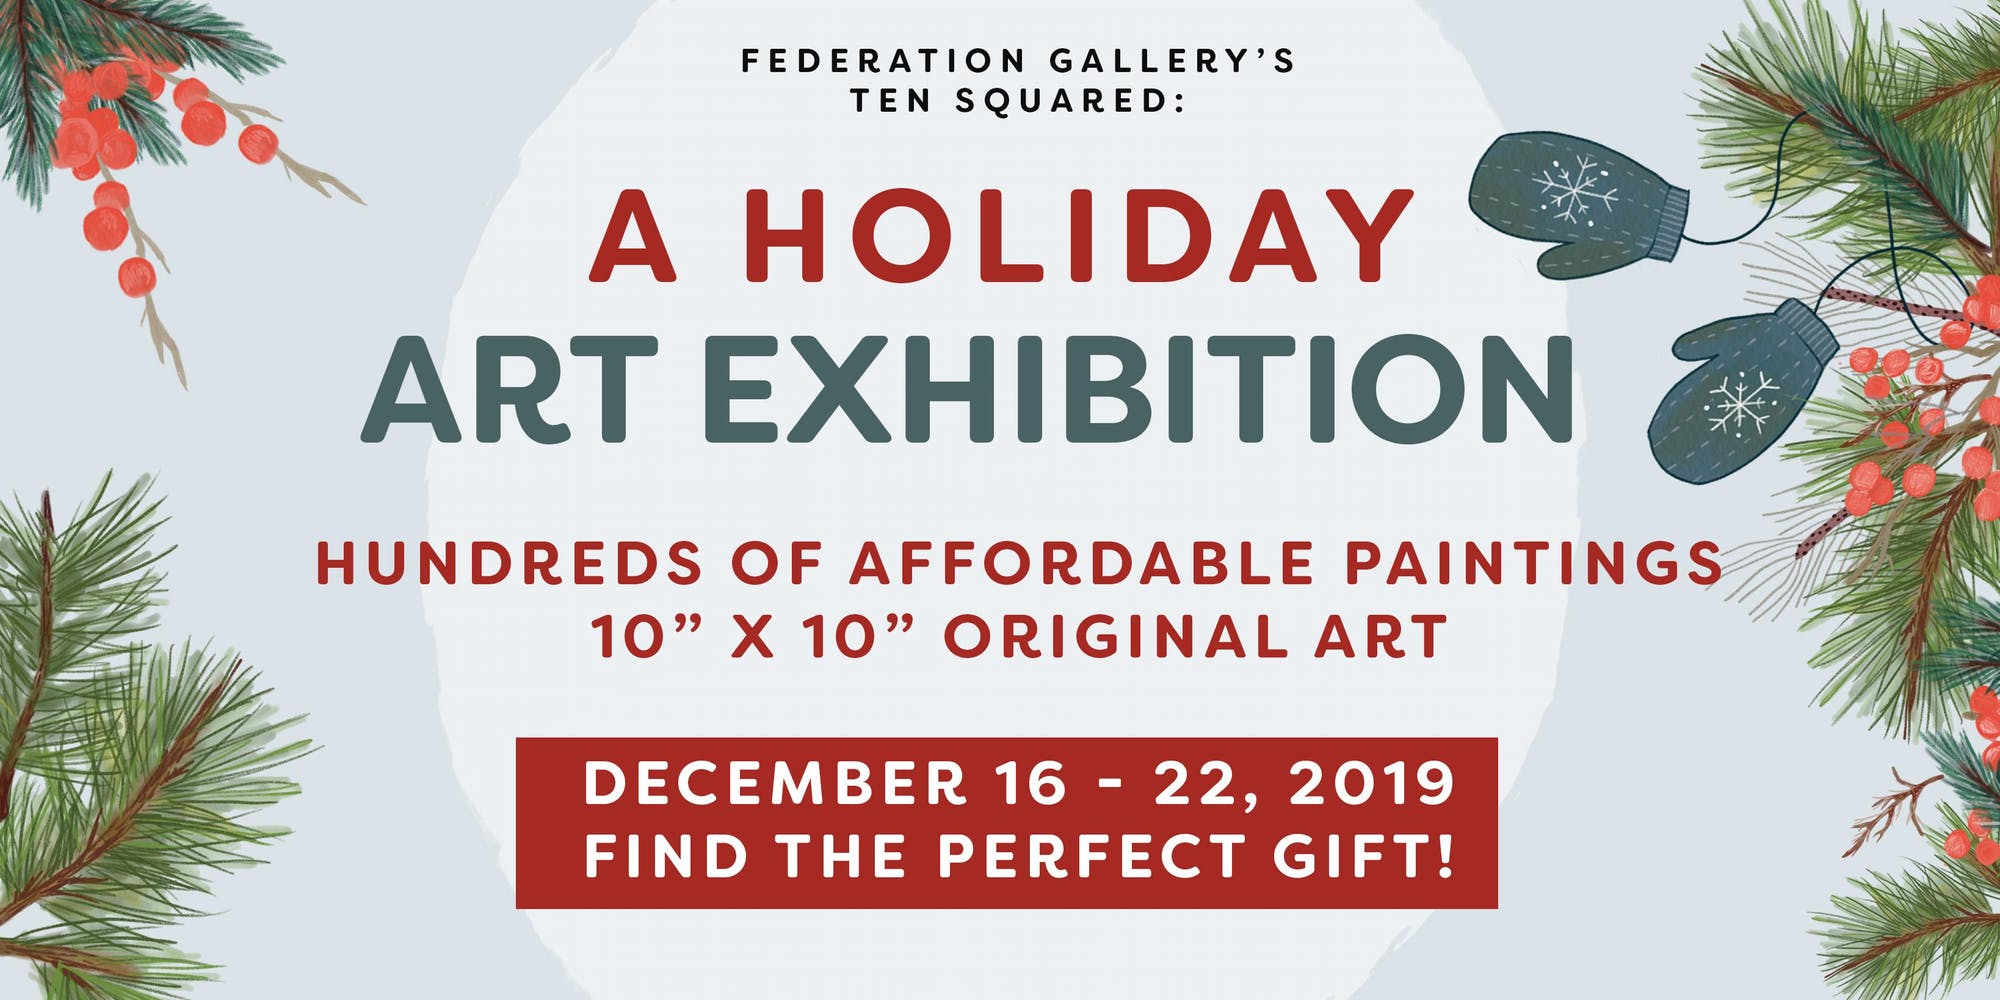 Holiday-art-exhibition